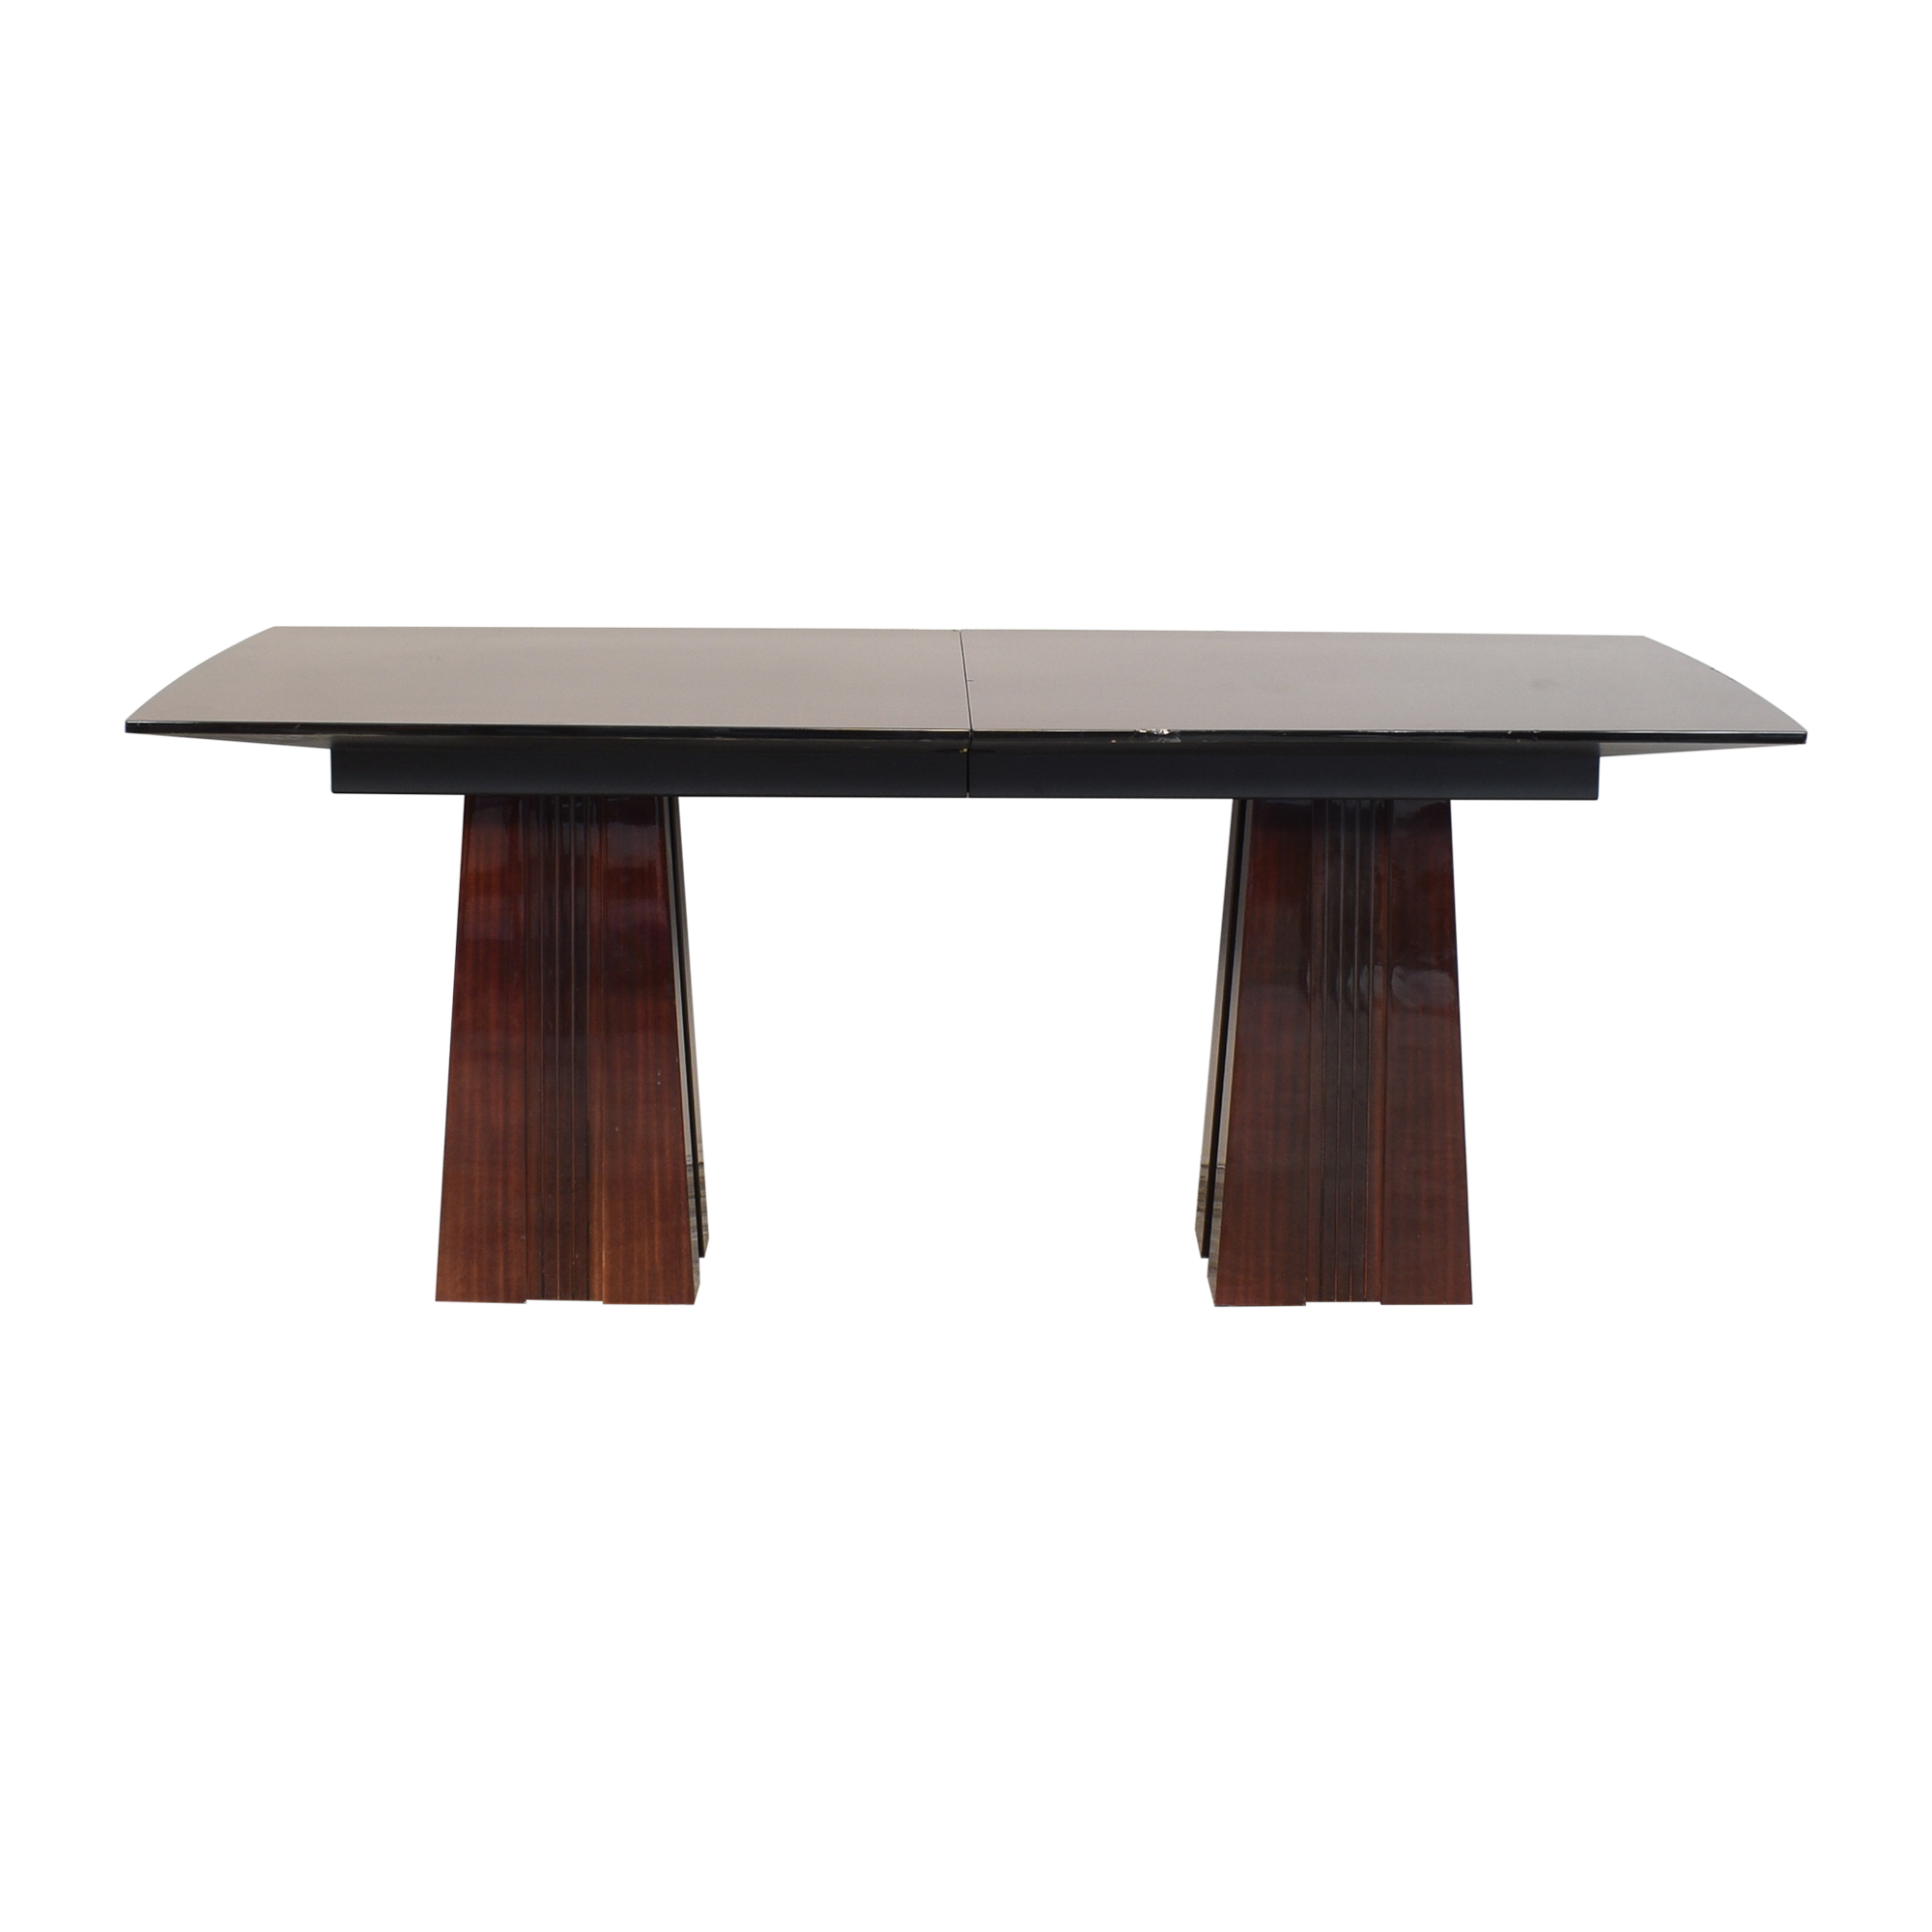 Dakota Jackson Dakota Jackson Ariel Collection Dining Table ma